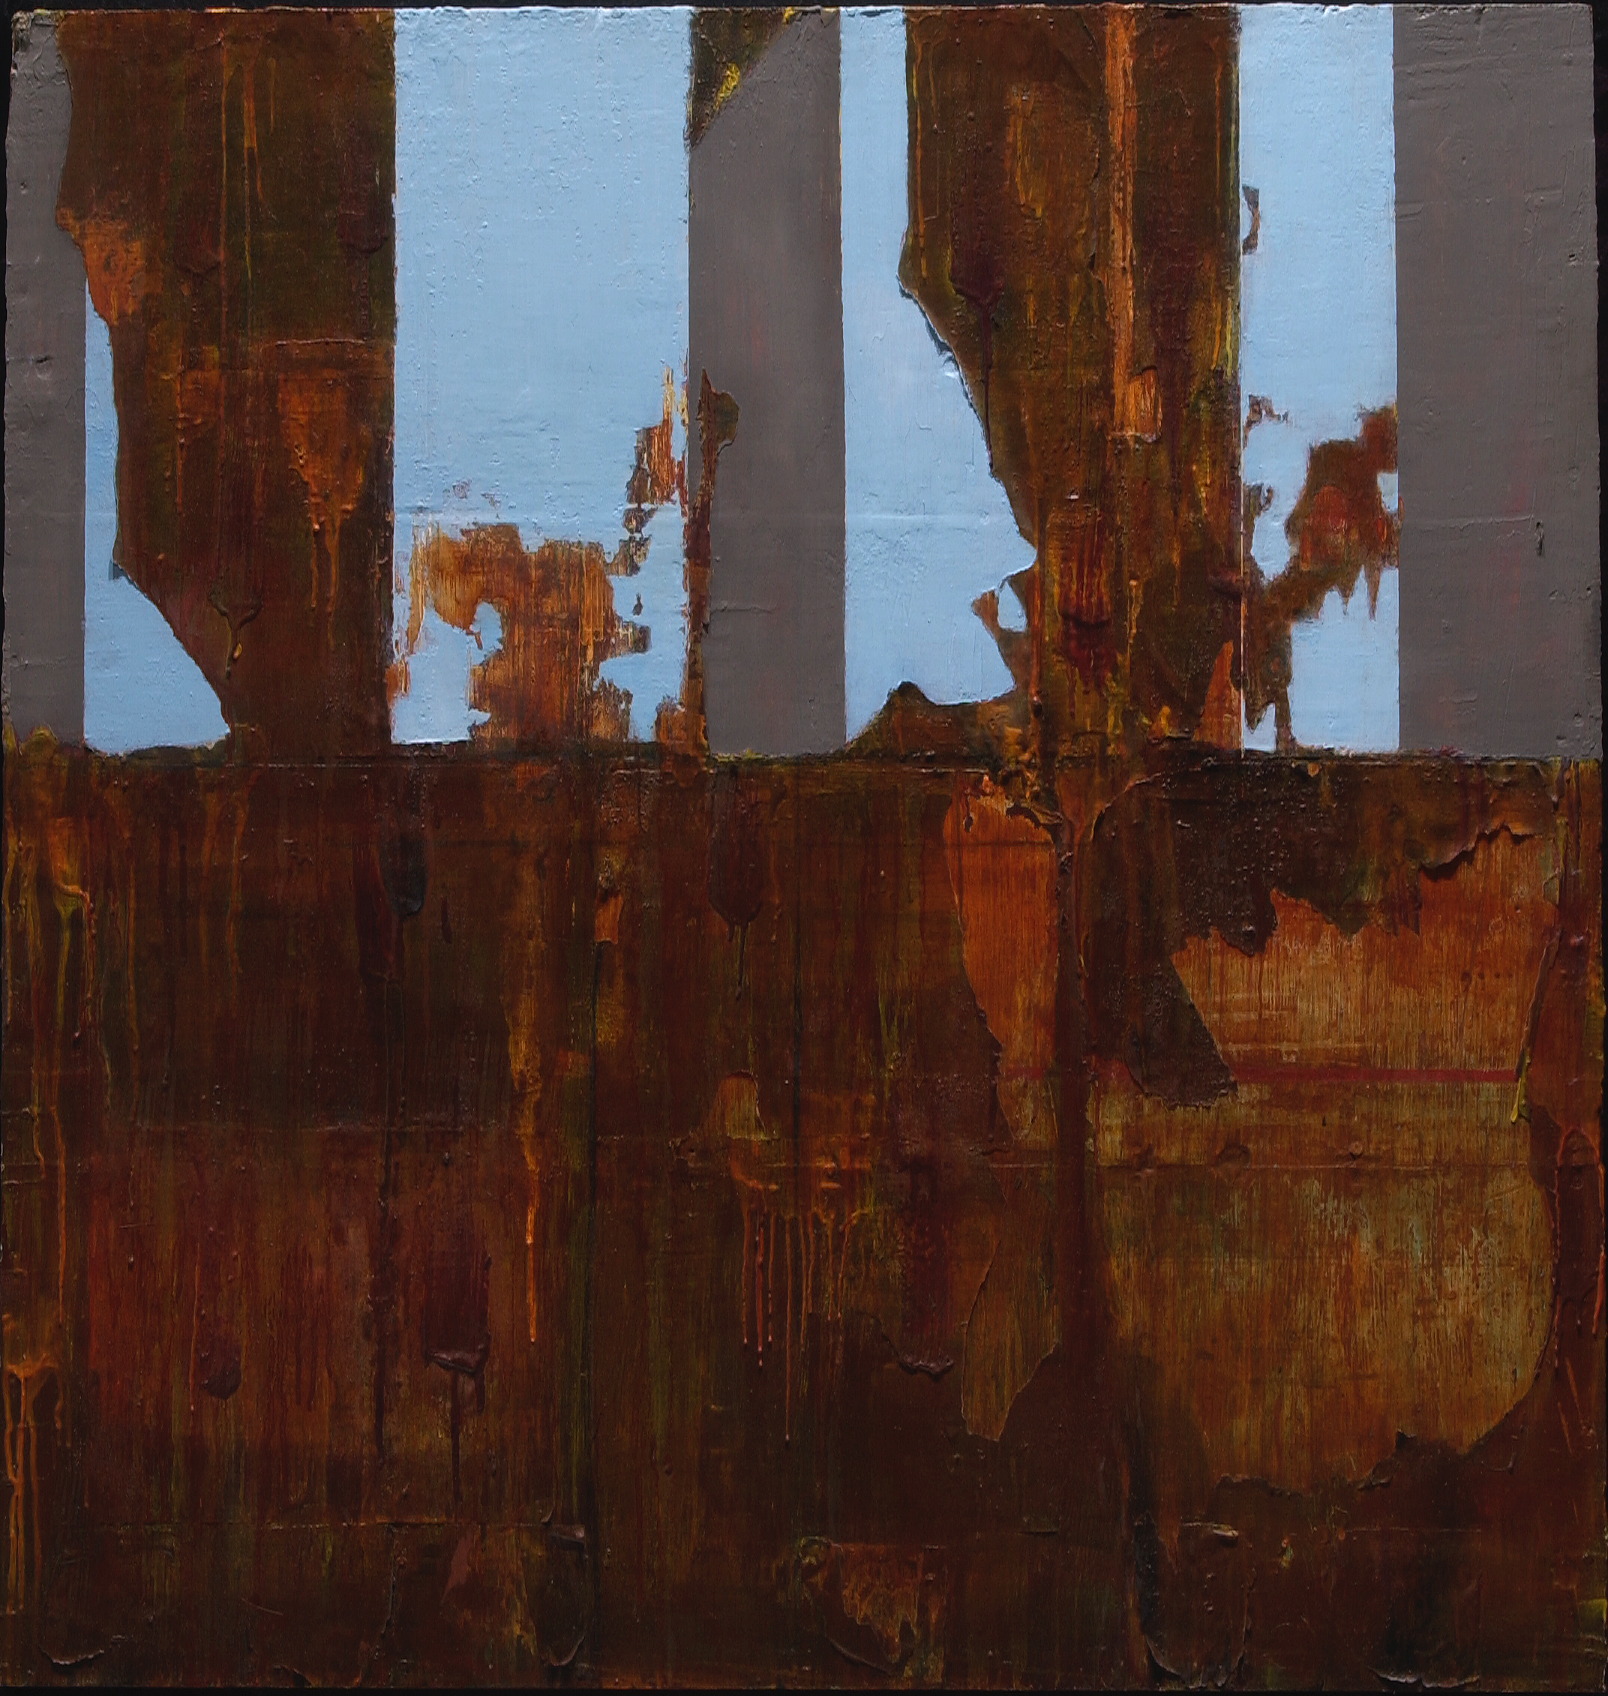 "differance    oil, encaustic, mixed media on panel, 48x48"", 2003  in private collection"